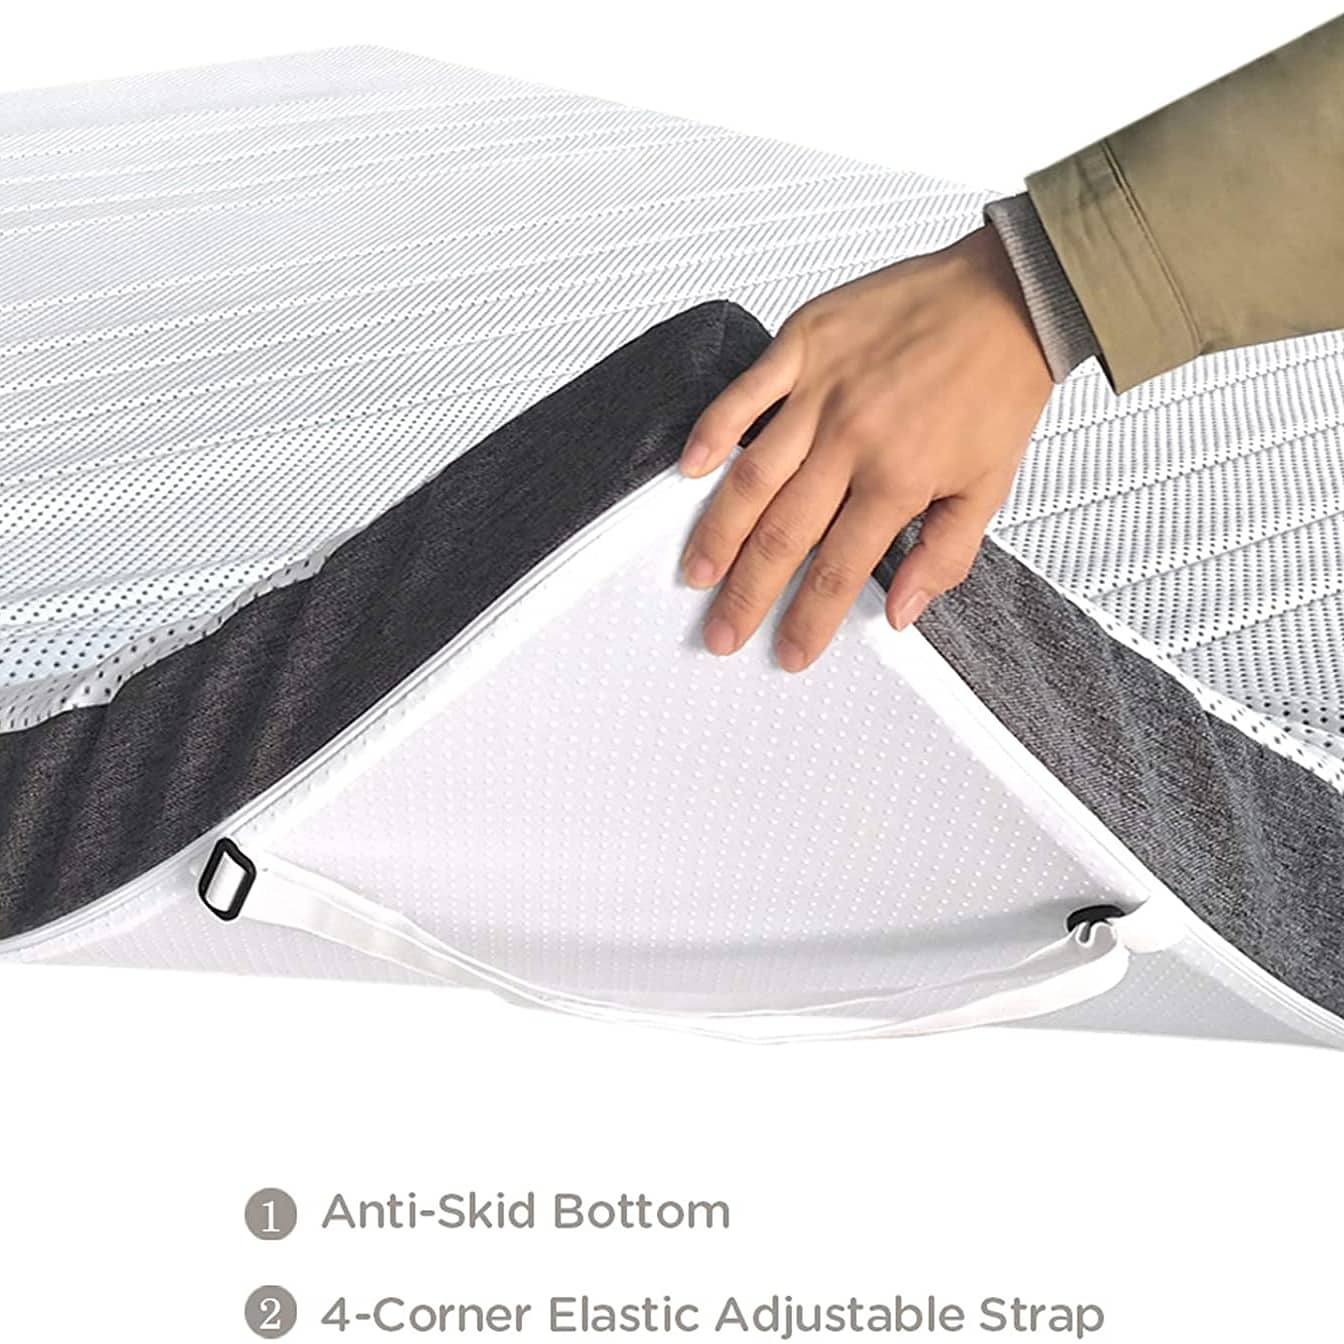 Antibacteria Gel-infused luxury luxurious sleep mattress topper design amazon best topper sleep tech Reinvigorate your old mattress or makes your new mattress more comfortable; The Extra -Luxury topper renovates both you and your sleeping time.✔️ 1.5-inch